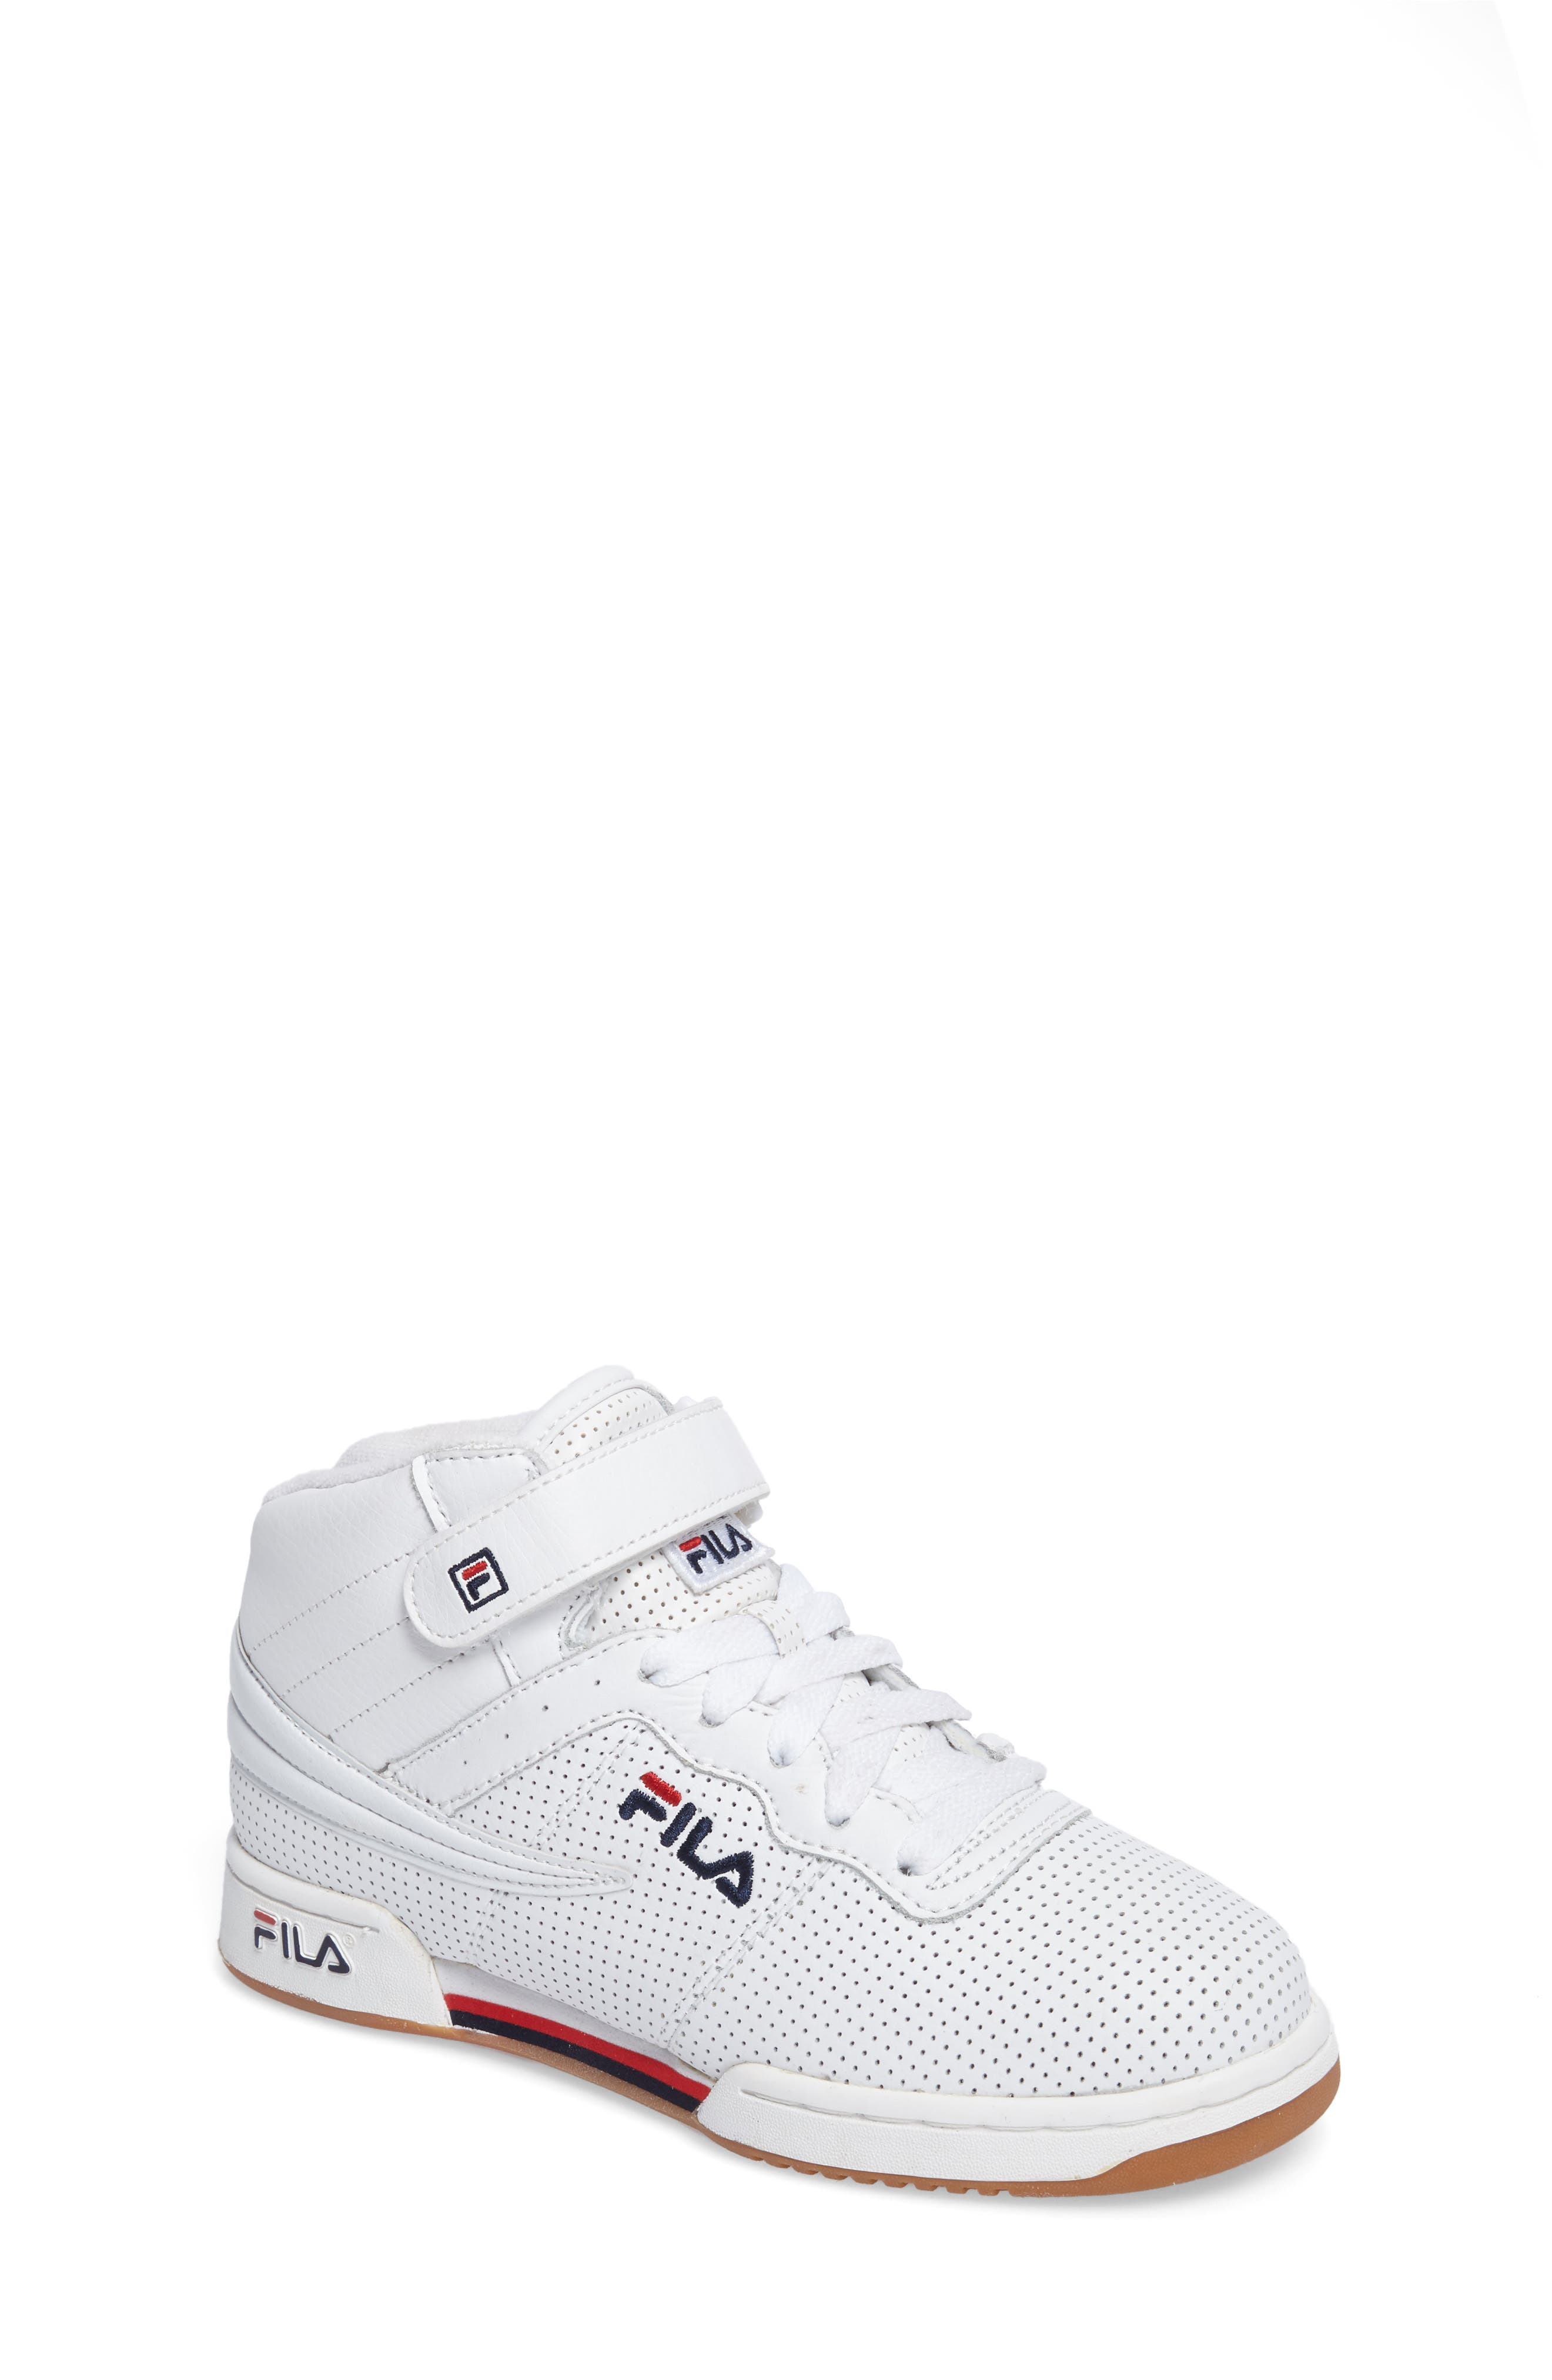 F-13 Perforated High Top Sneaker,                             Main thumbnail 1, color,                             White/Navy/Red